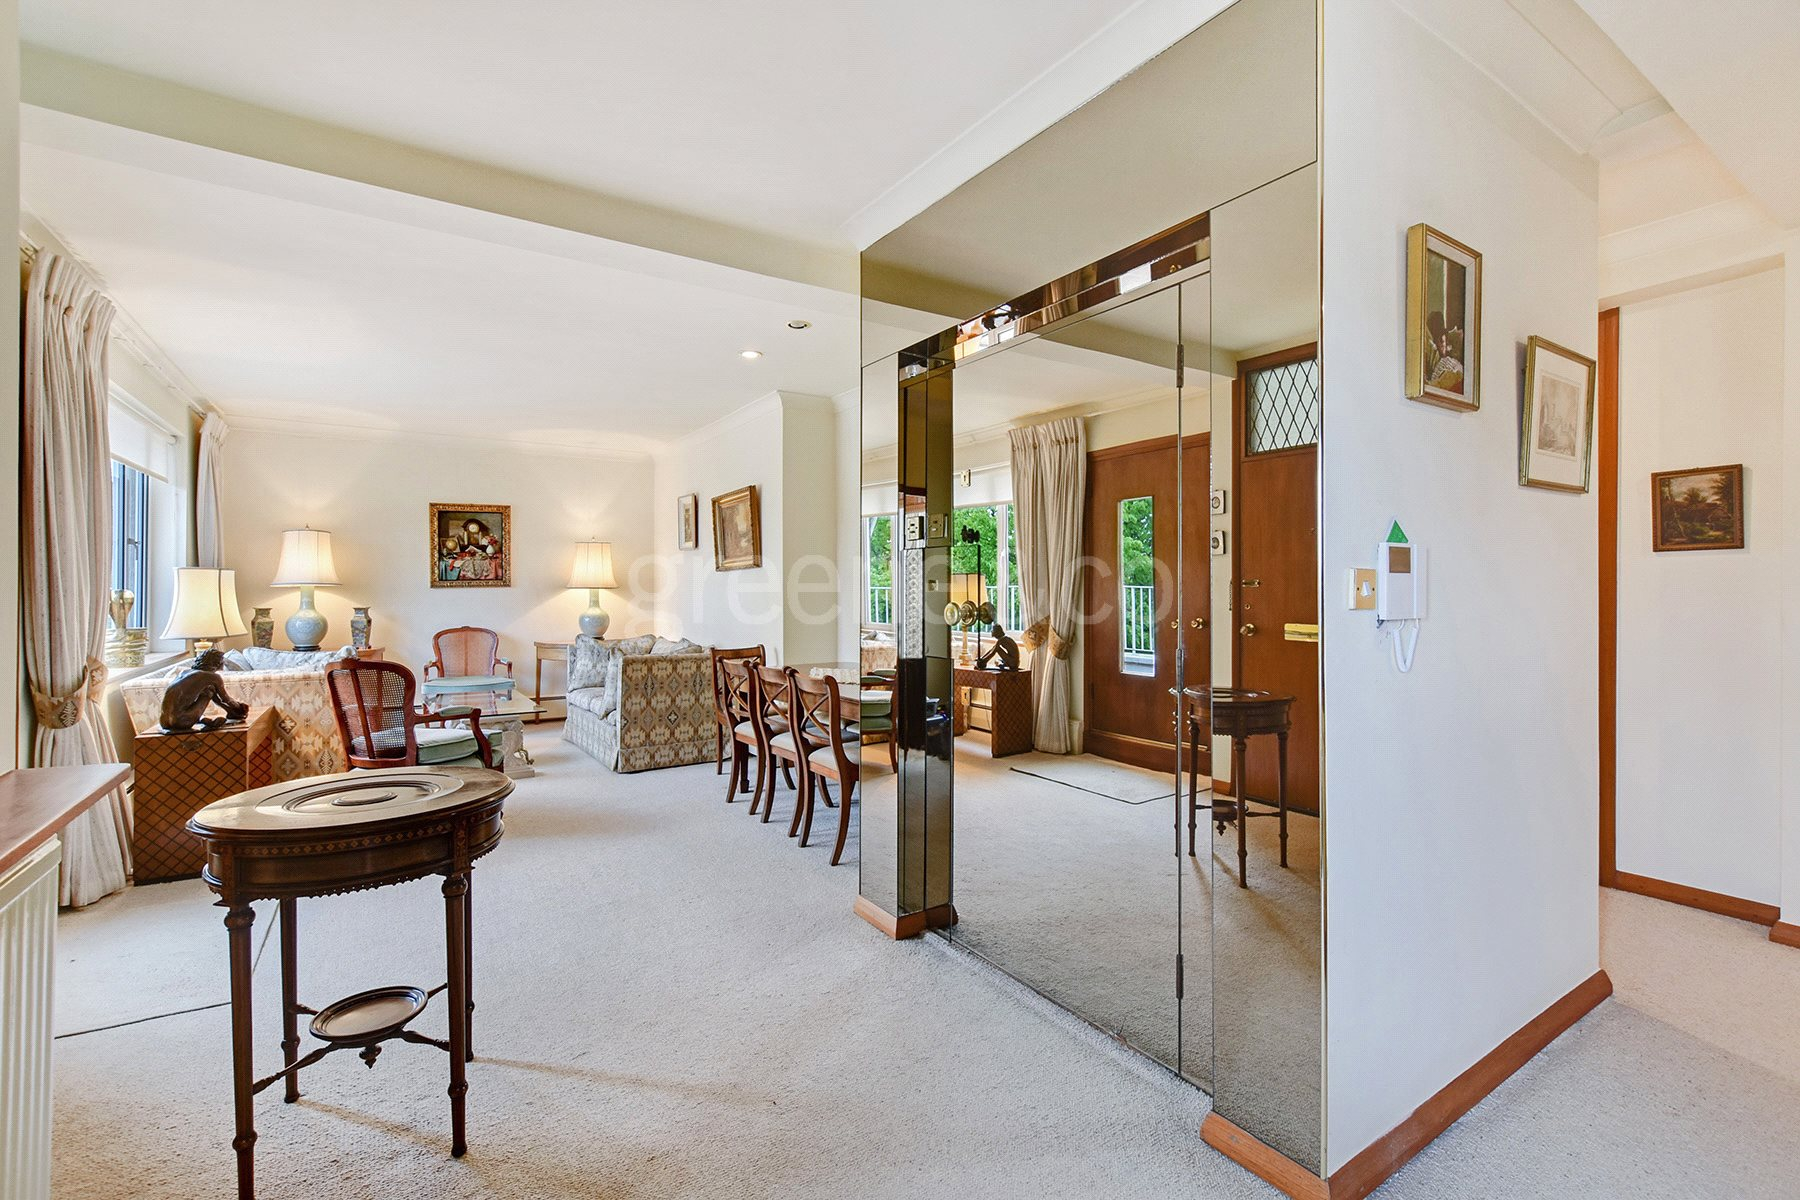 3 Bedrooms House for sale in Princess Court, 74 Compayne Gardens, London, NW6